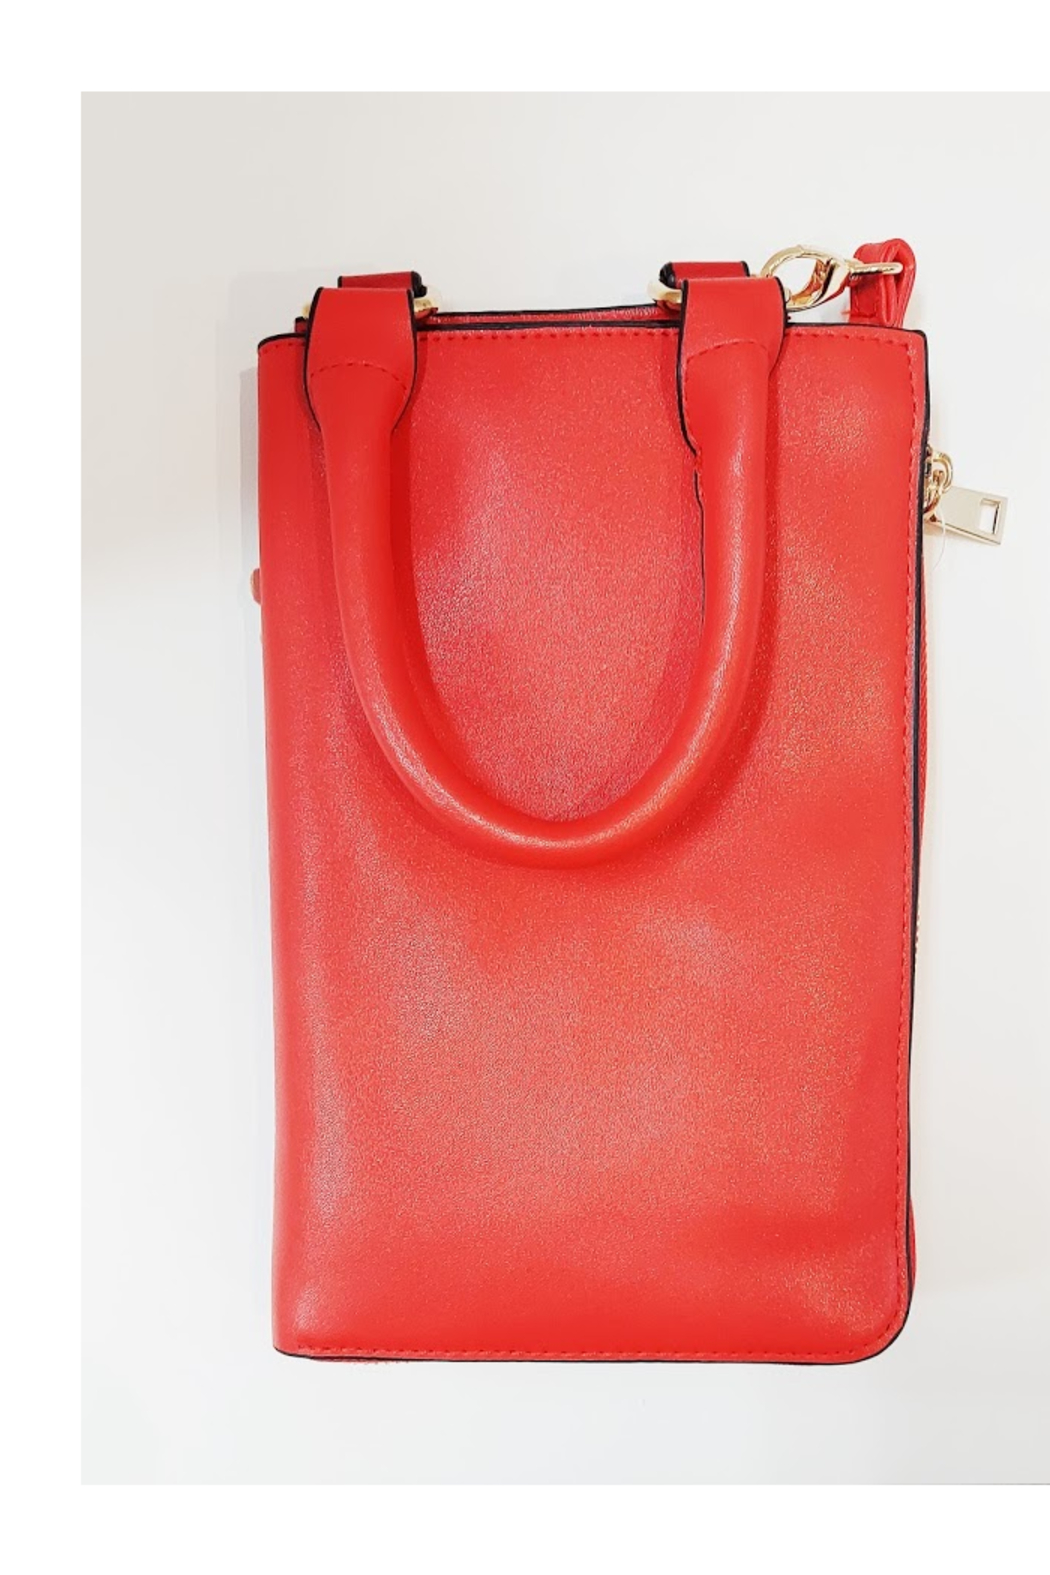 KIMBALS Lady in Red Small Tote Bag - Front Full Image